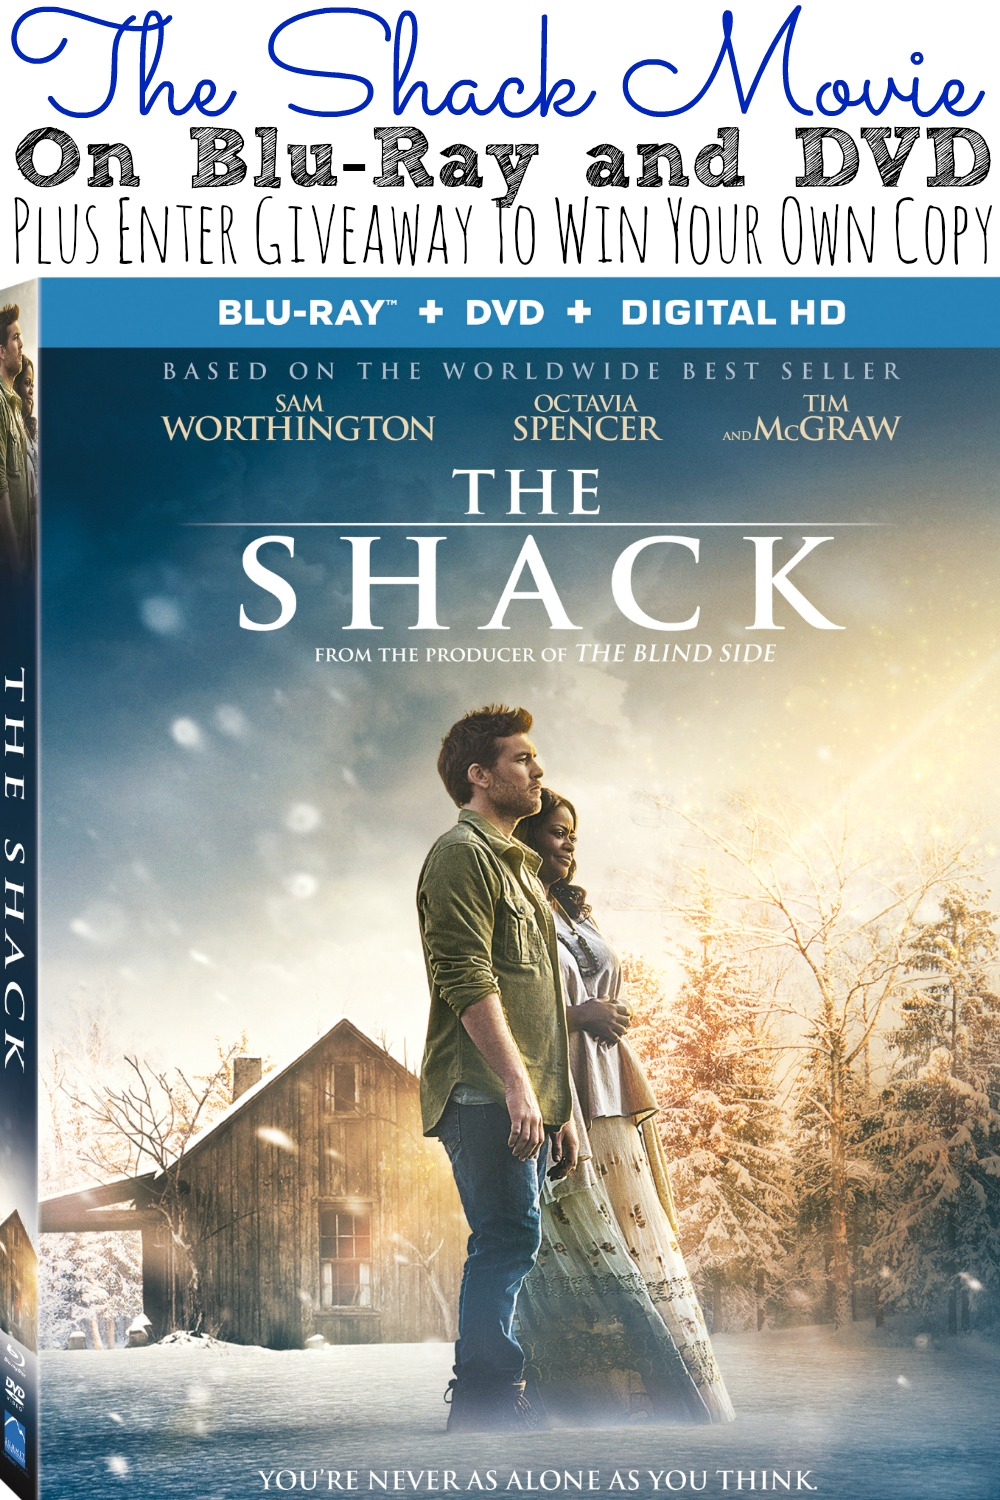 The Shack Movie On Blu-Ray and DVD + Giveaway - abccreativelearning.com